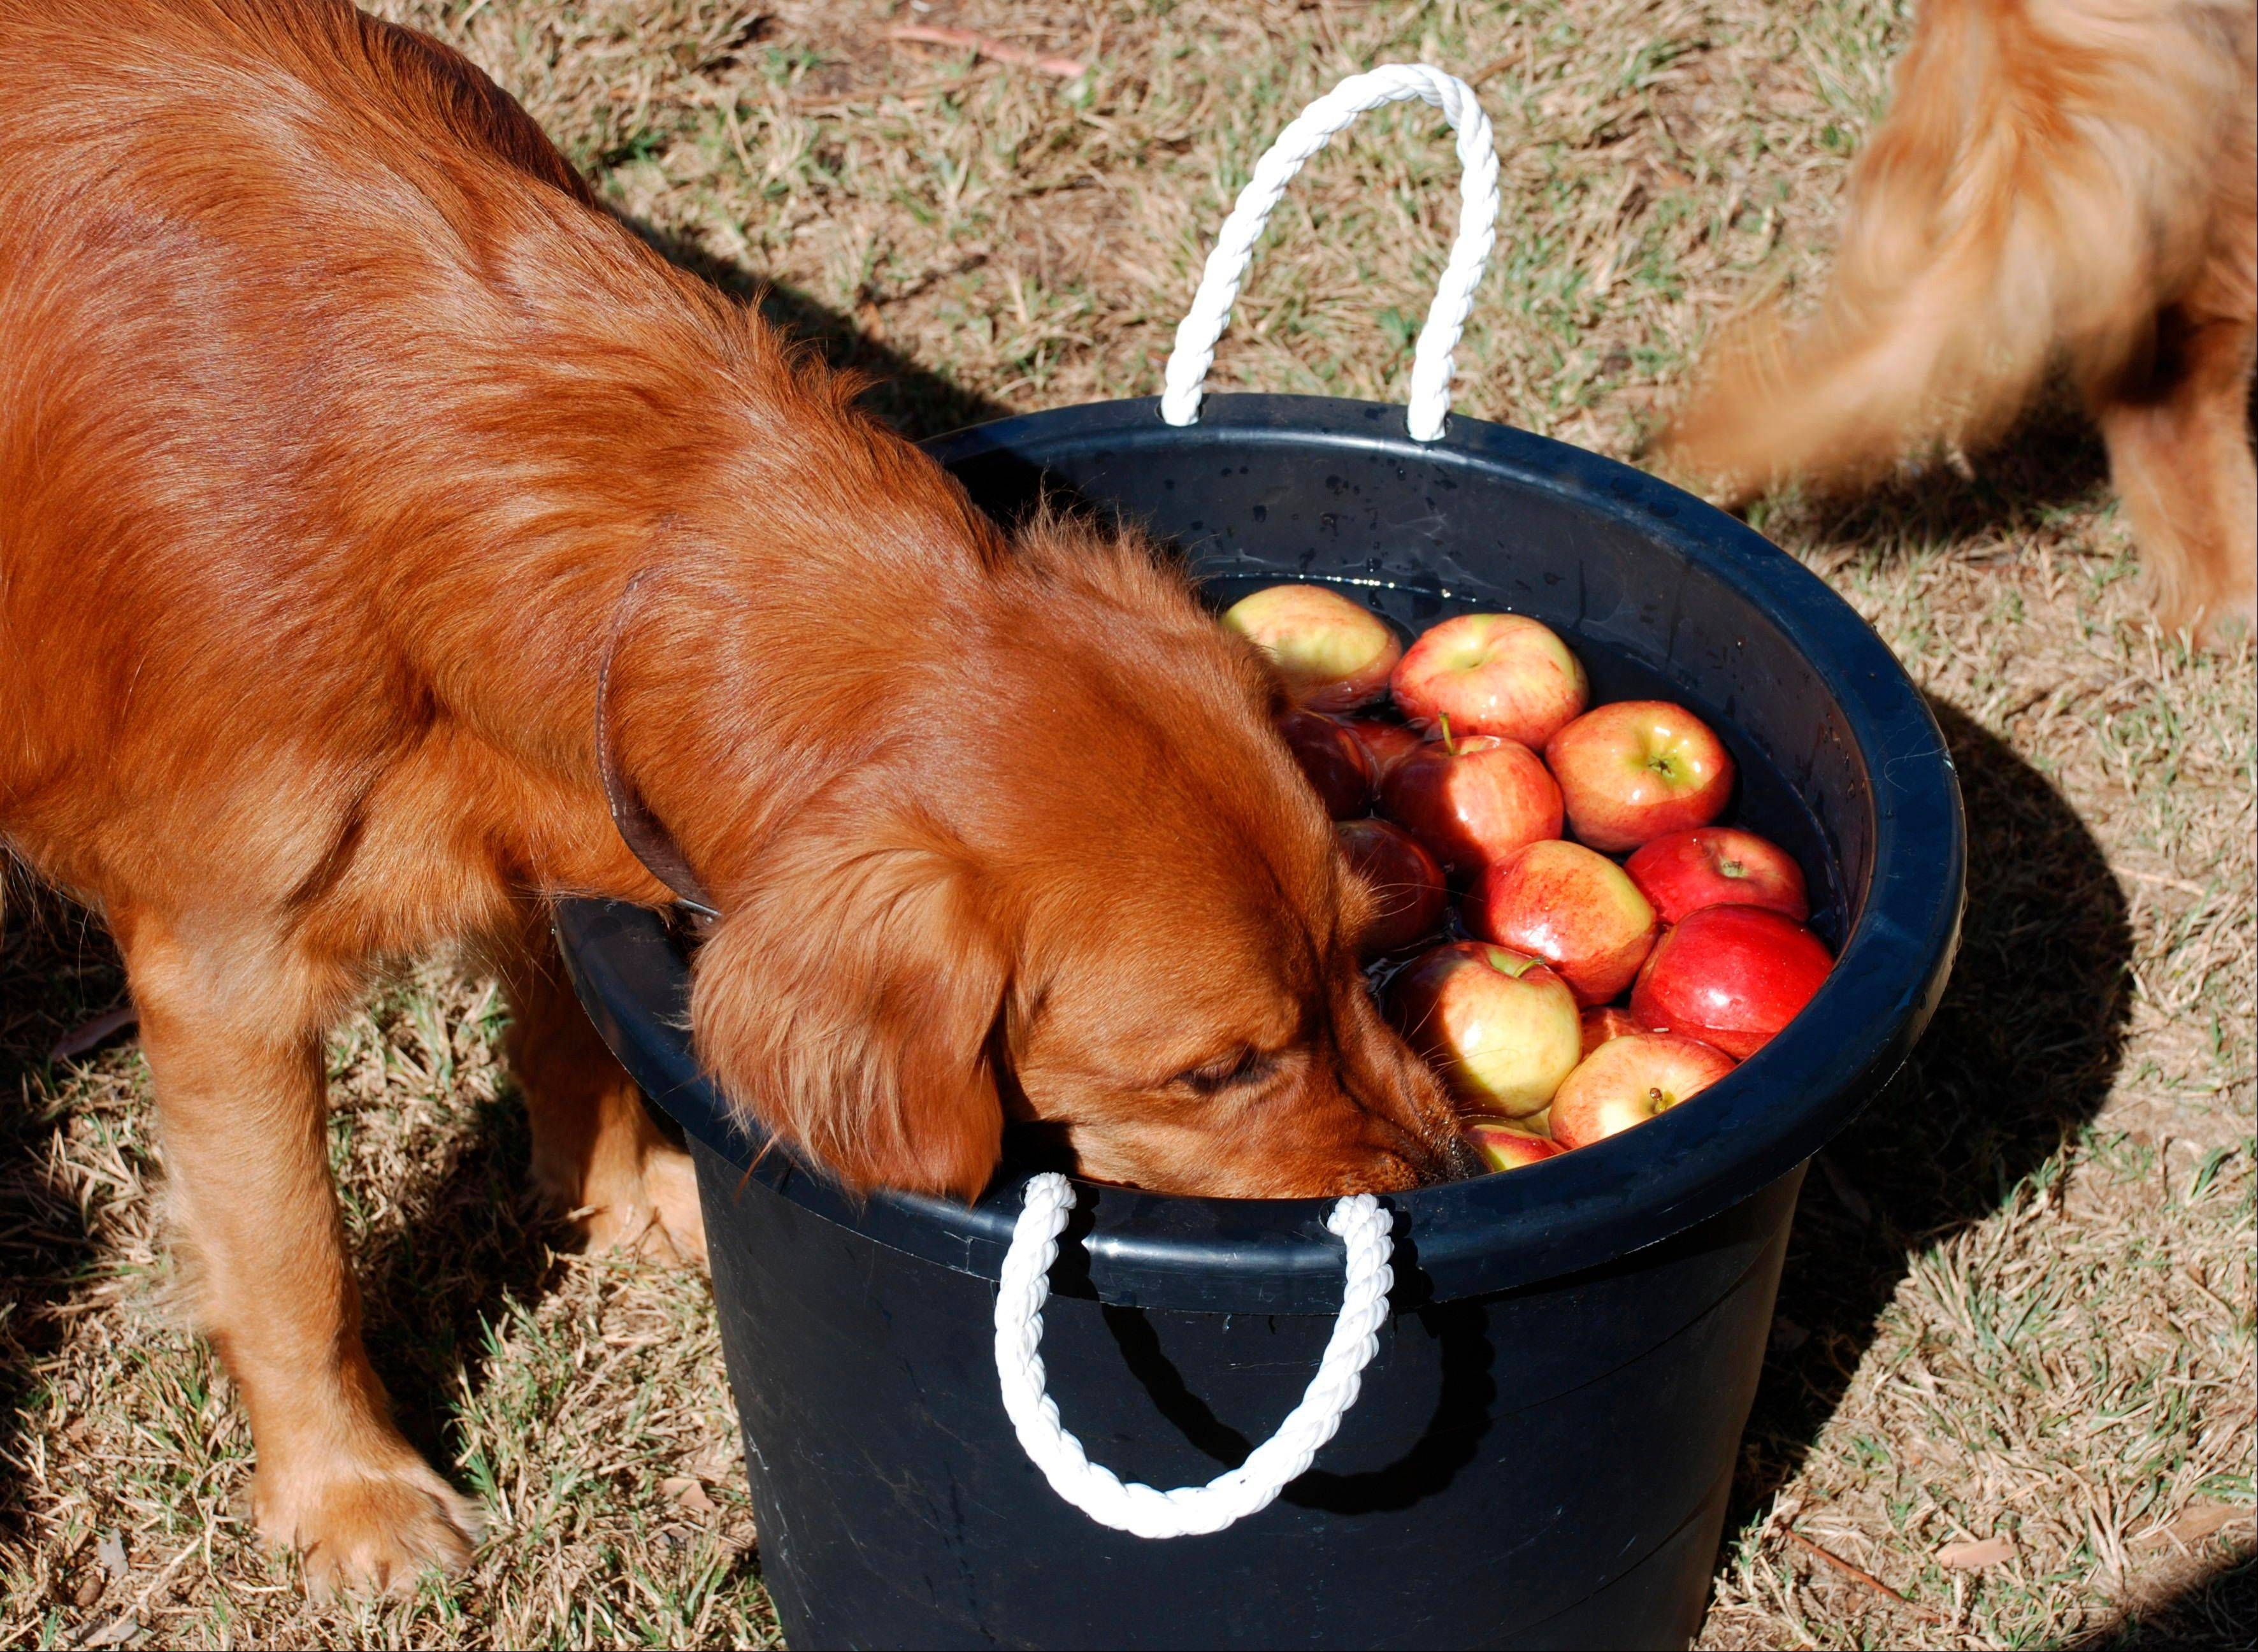 This Oct. 31, 2010 image provided by Sue Subkow shows Nita and Jody Kriesch's golden retriever, Mackenzie, bobbing for apples at the San Diego Golden Retriever Meetup Group's Halloween Pooch Party in San Diego, Calif. Subkow's parties have included bobbing for frozen hot dogs and apples.